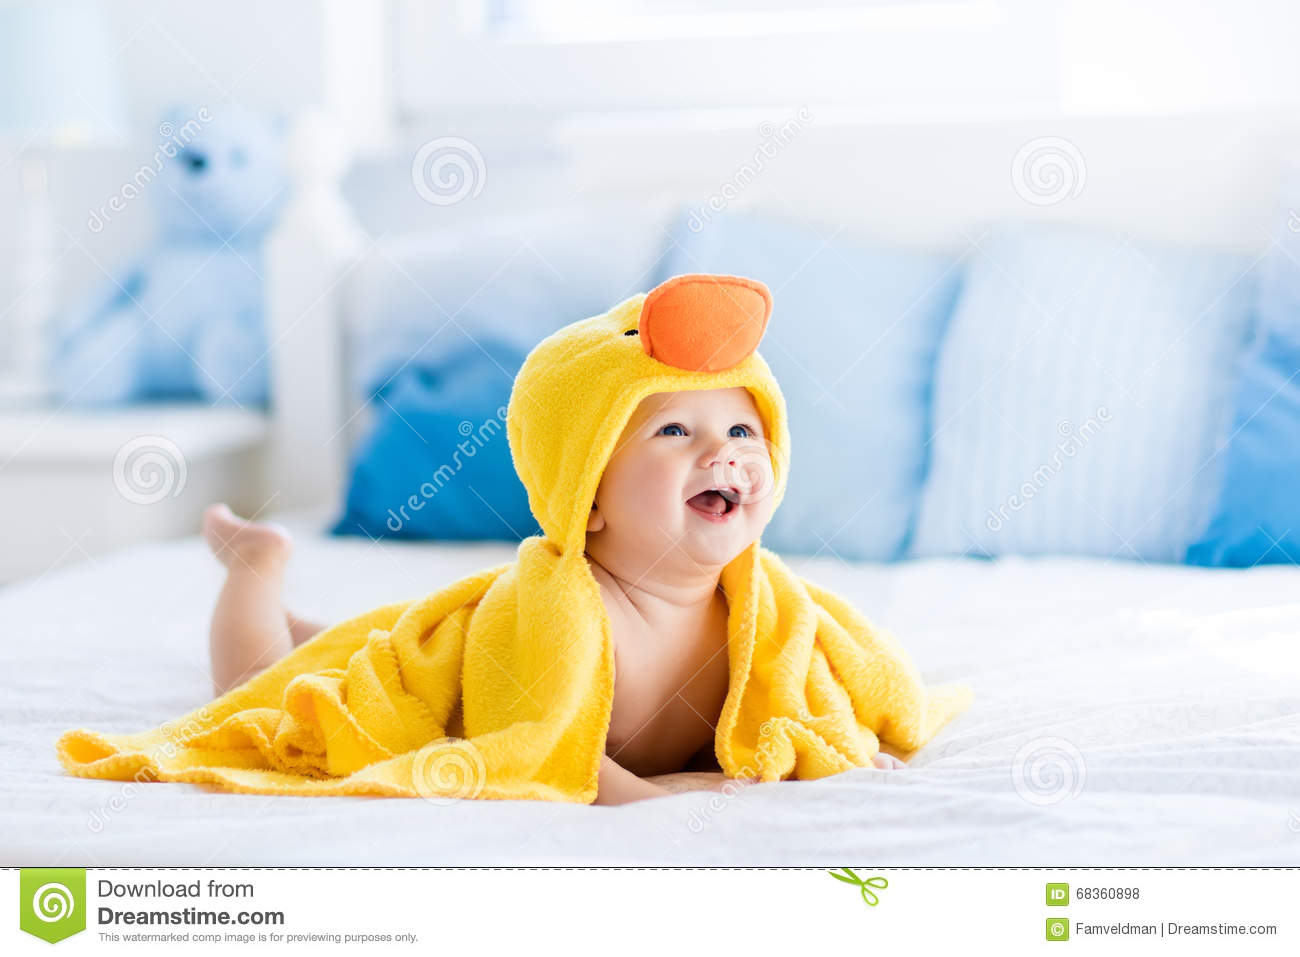 Cute Baby After Bath In Yellow Duck Towel Stock Photo - Image of ...